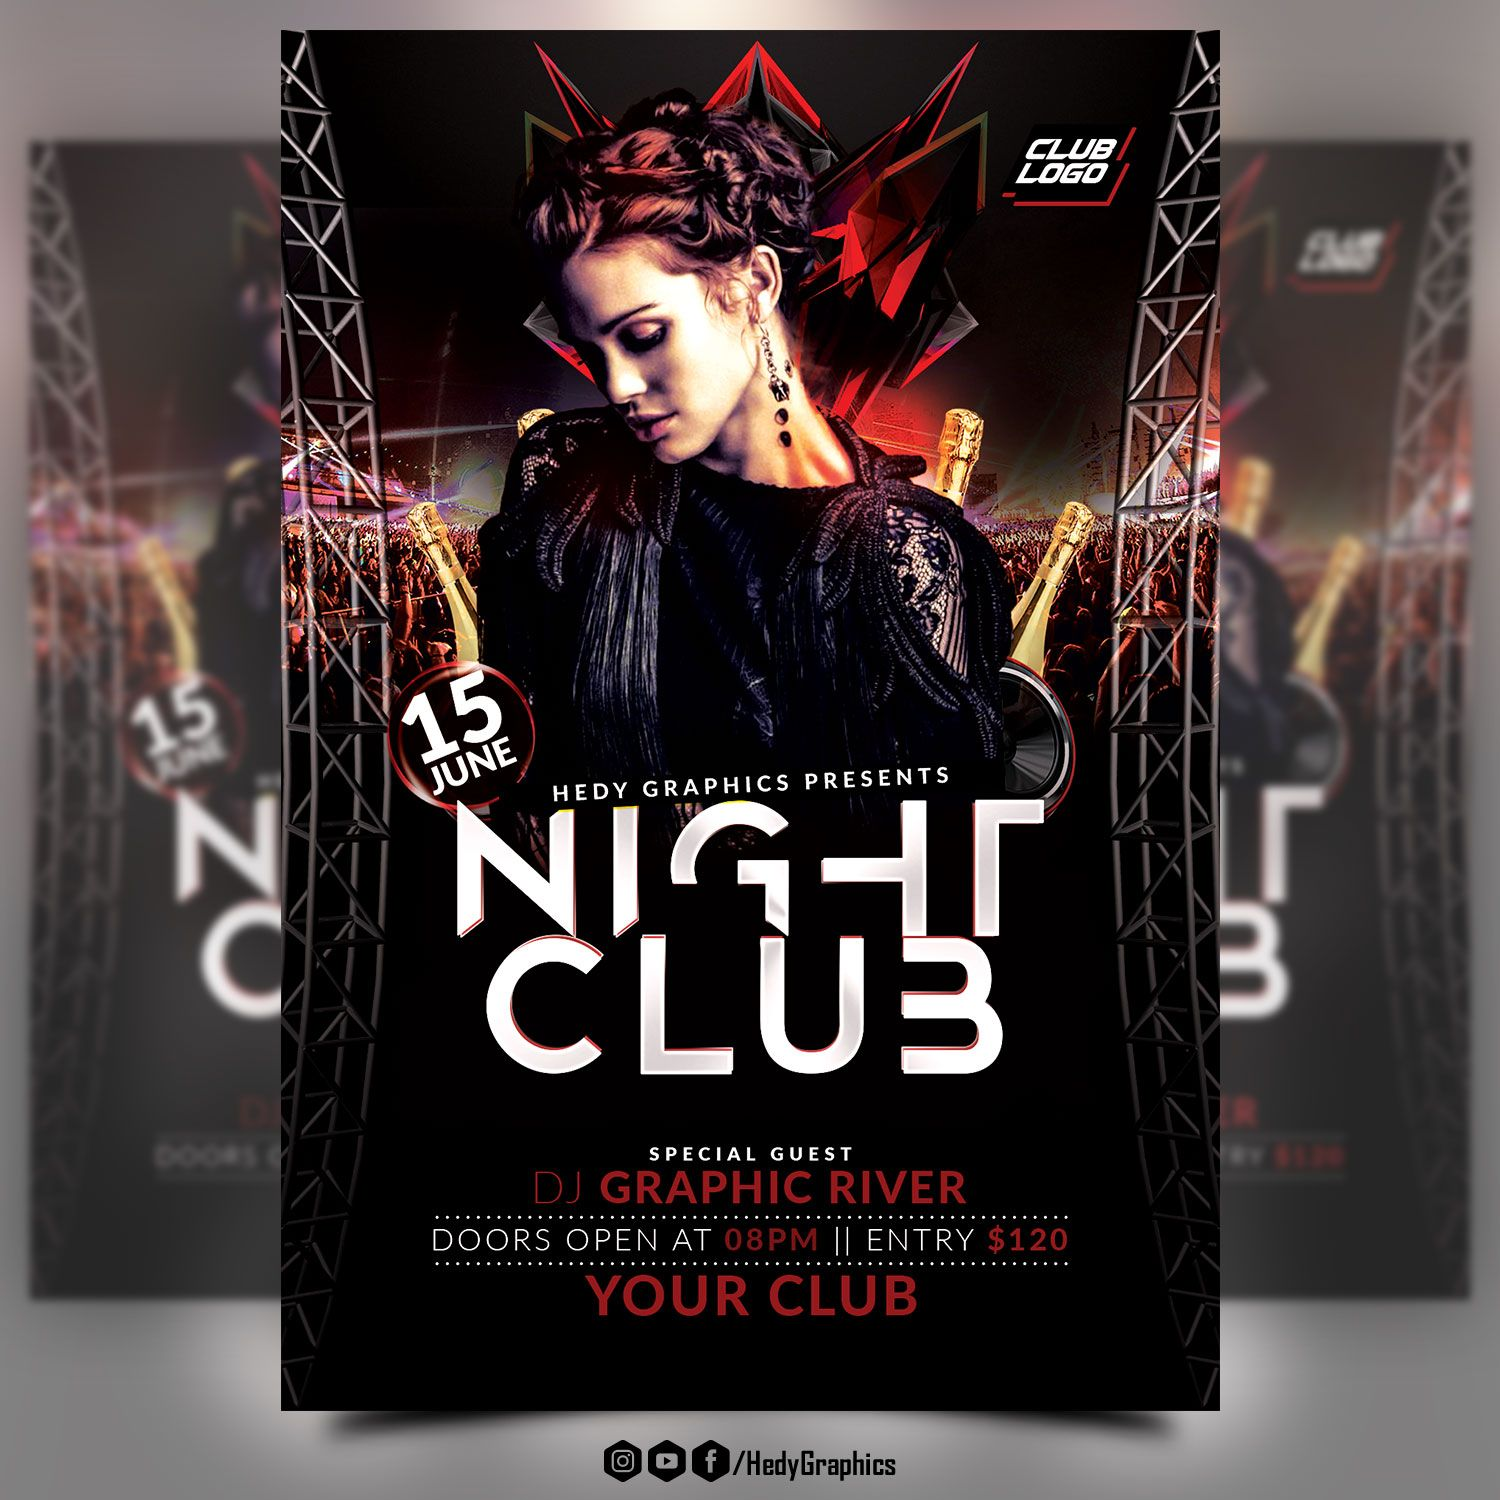 Night Club Flyer Screenshot 2